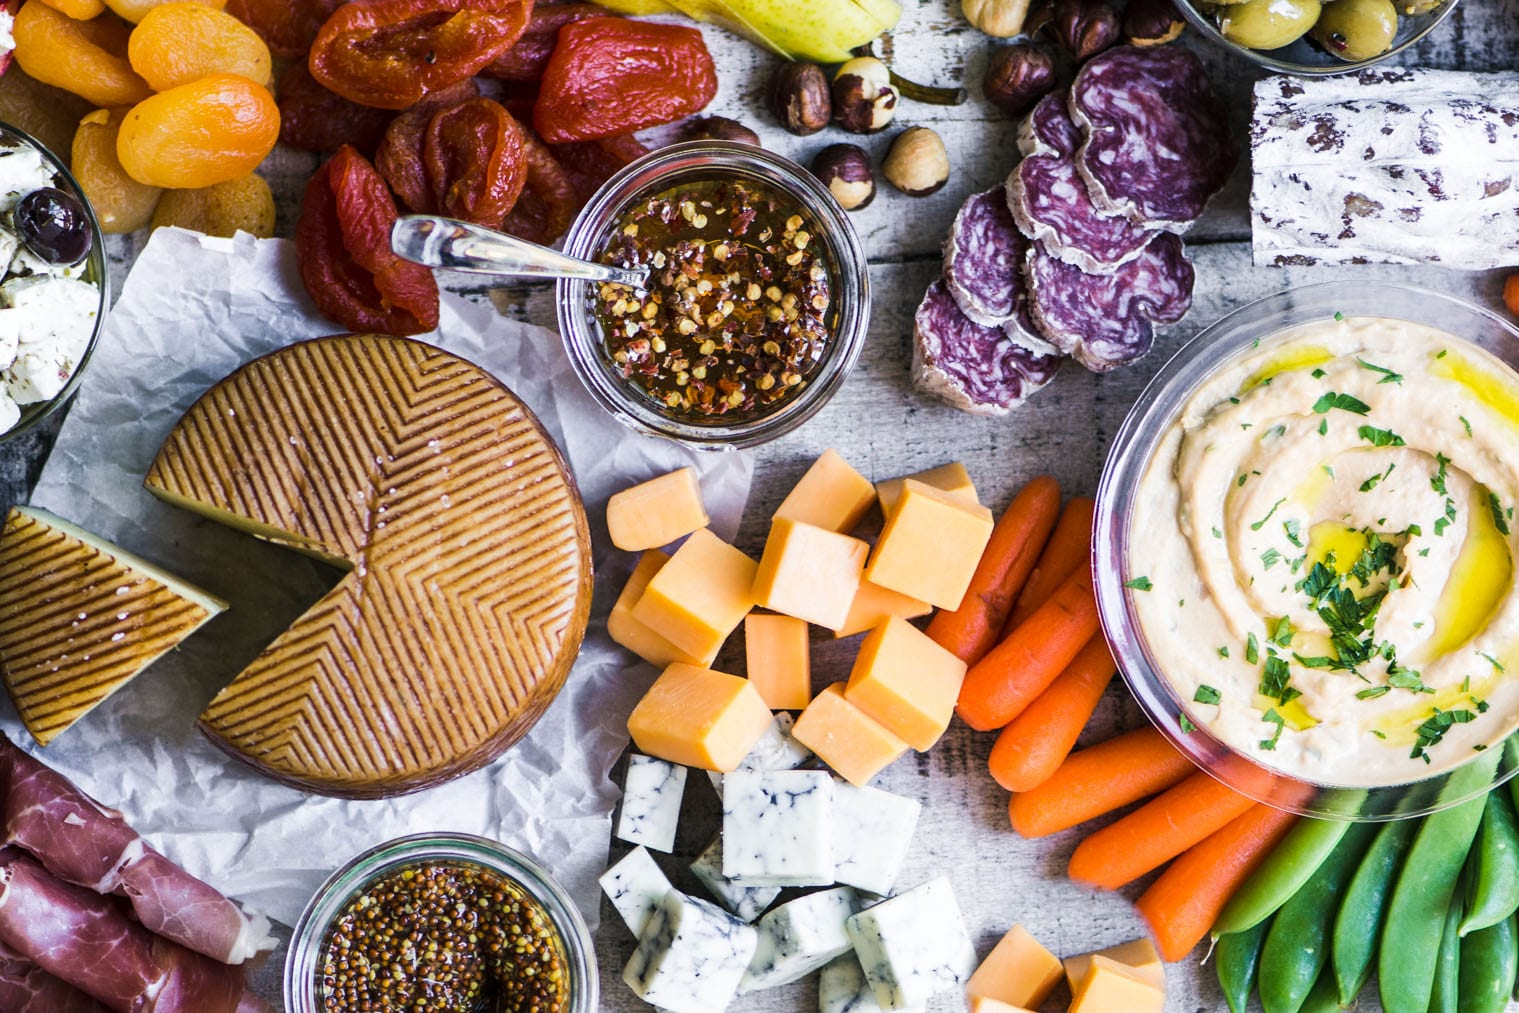 How to make the ultimate cheese board with meats, cheeses, dried fruits, and hummus.